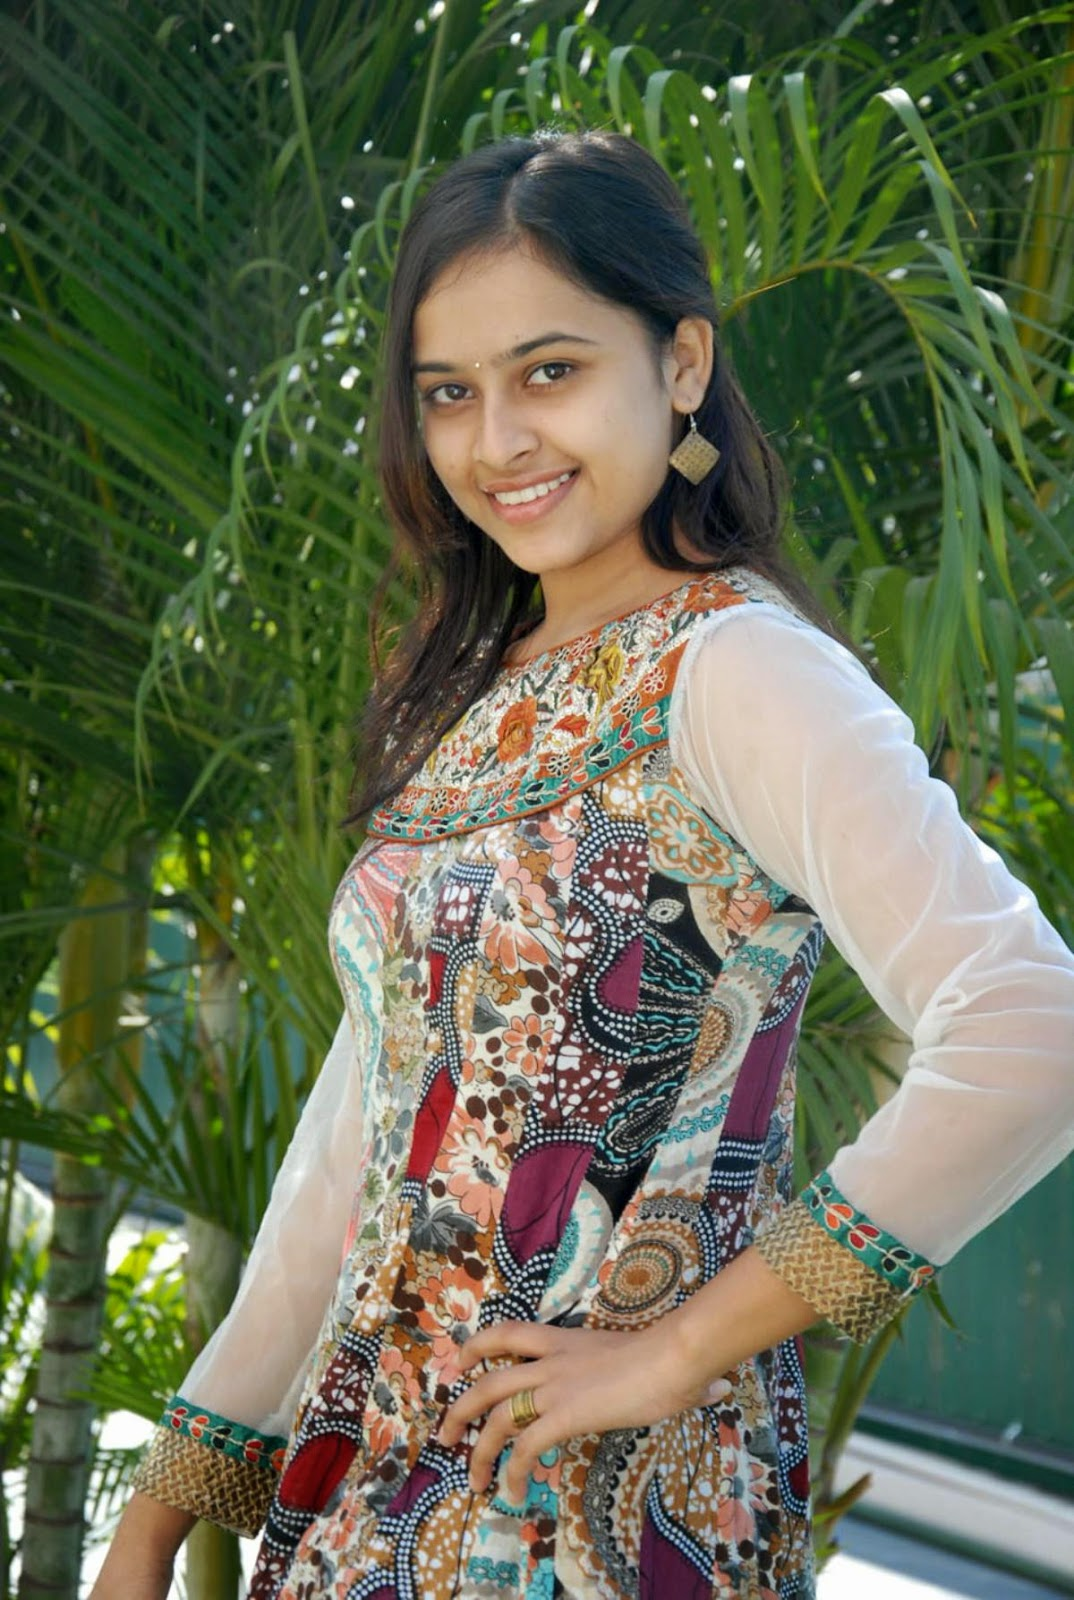 Actress Sri Divya Photos: COOGLED: ACTRESS SRI DIVYA LATEST HD STILLS